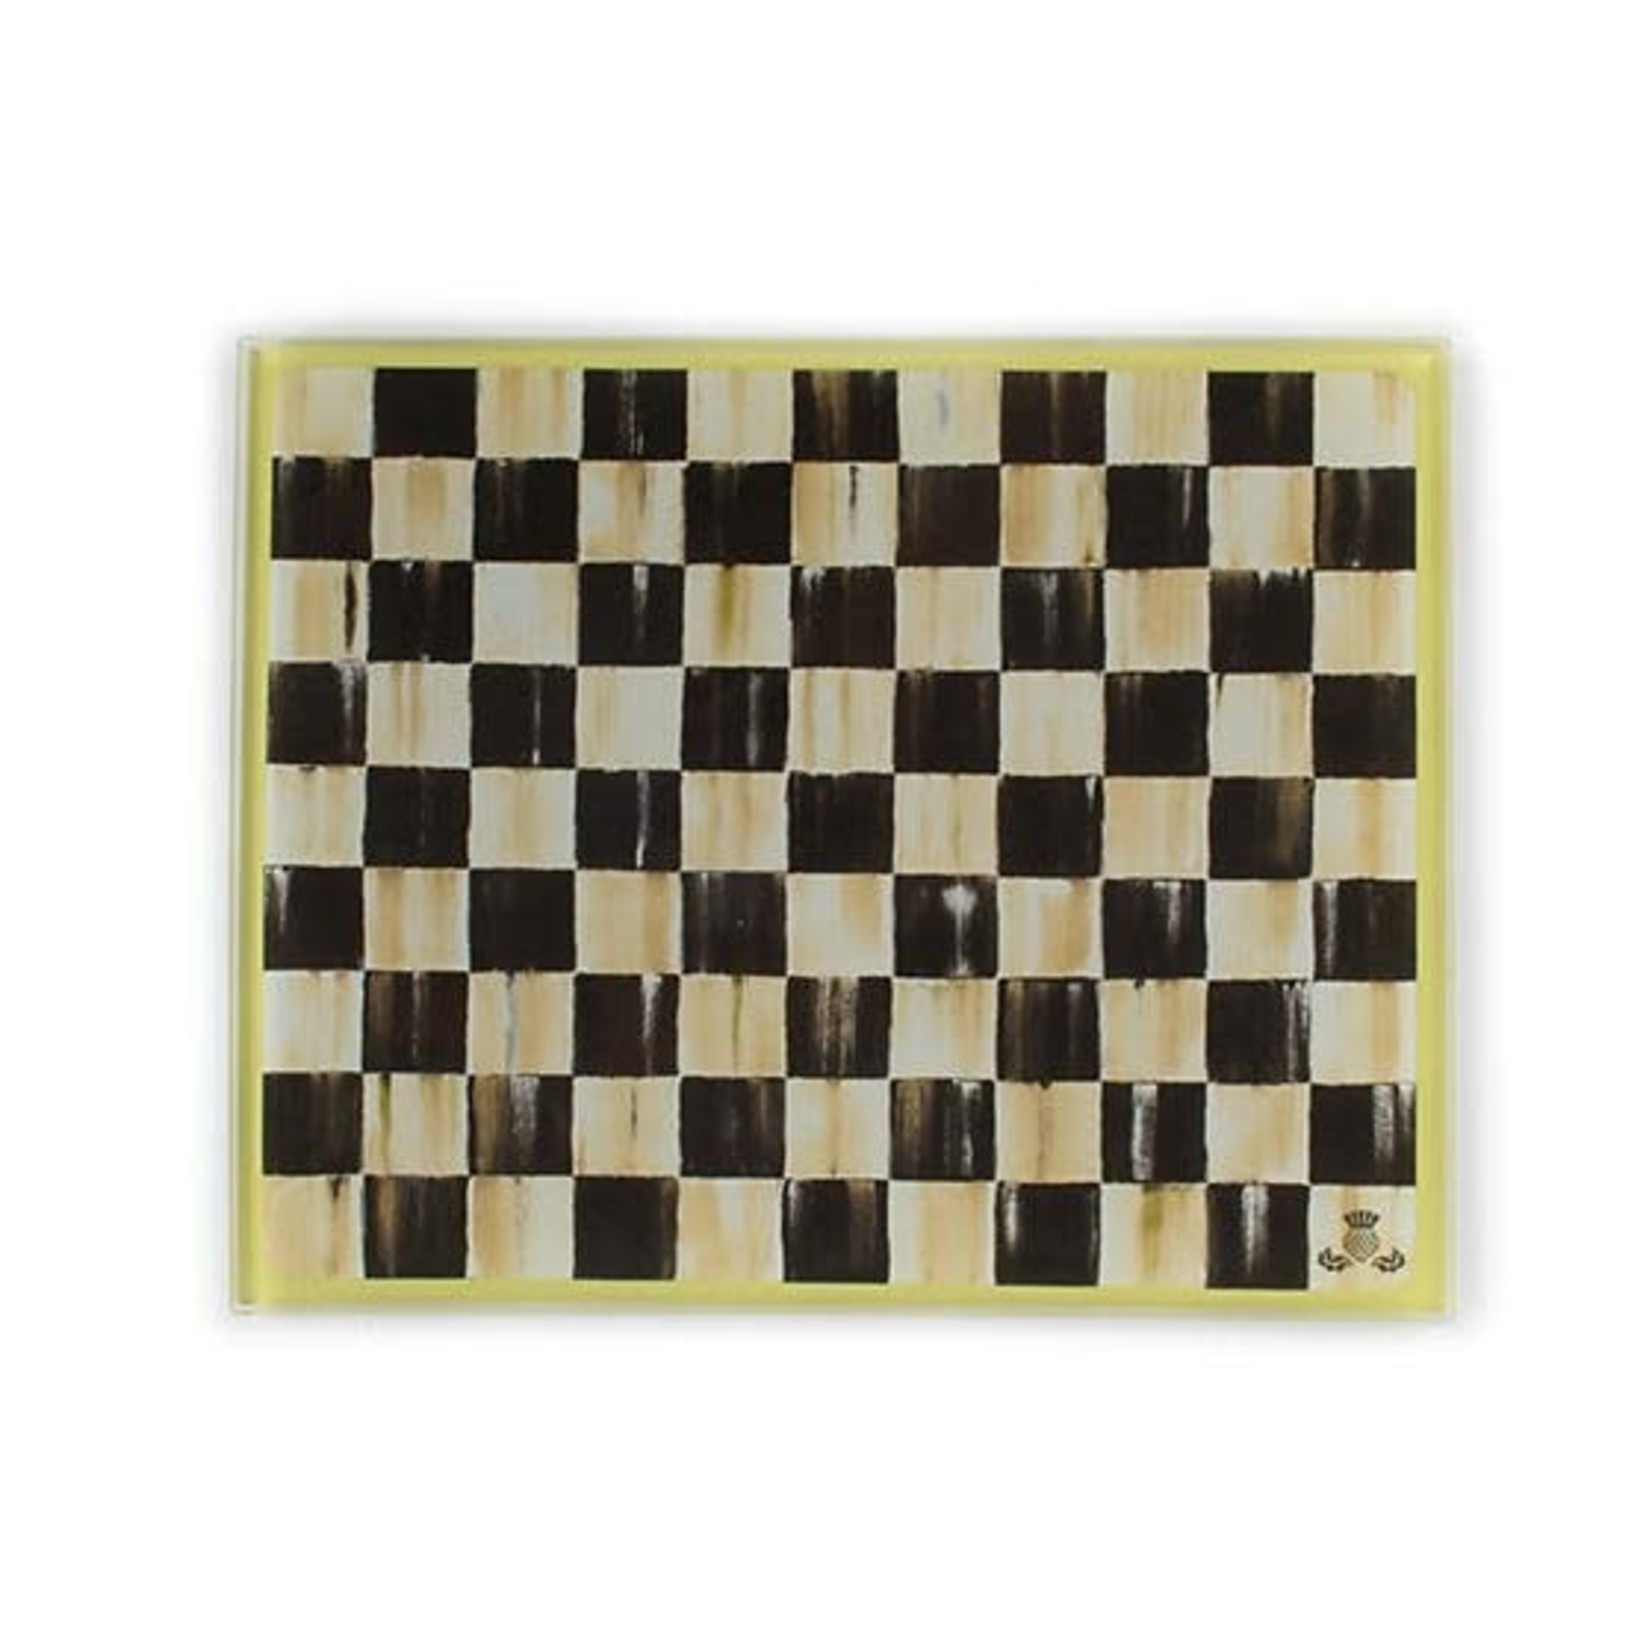 MacKenzie Childs Courtly Check Cutting Board - Small